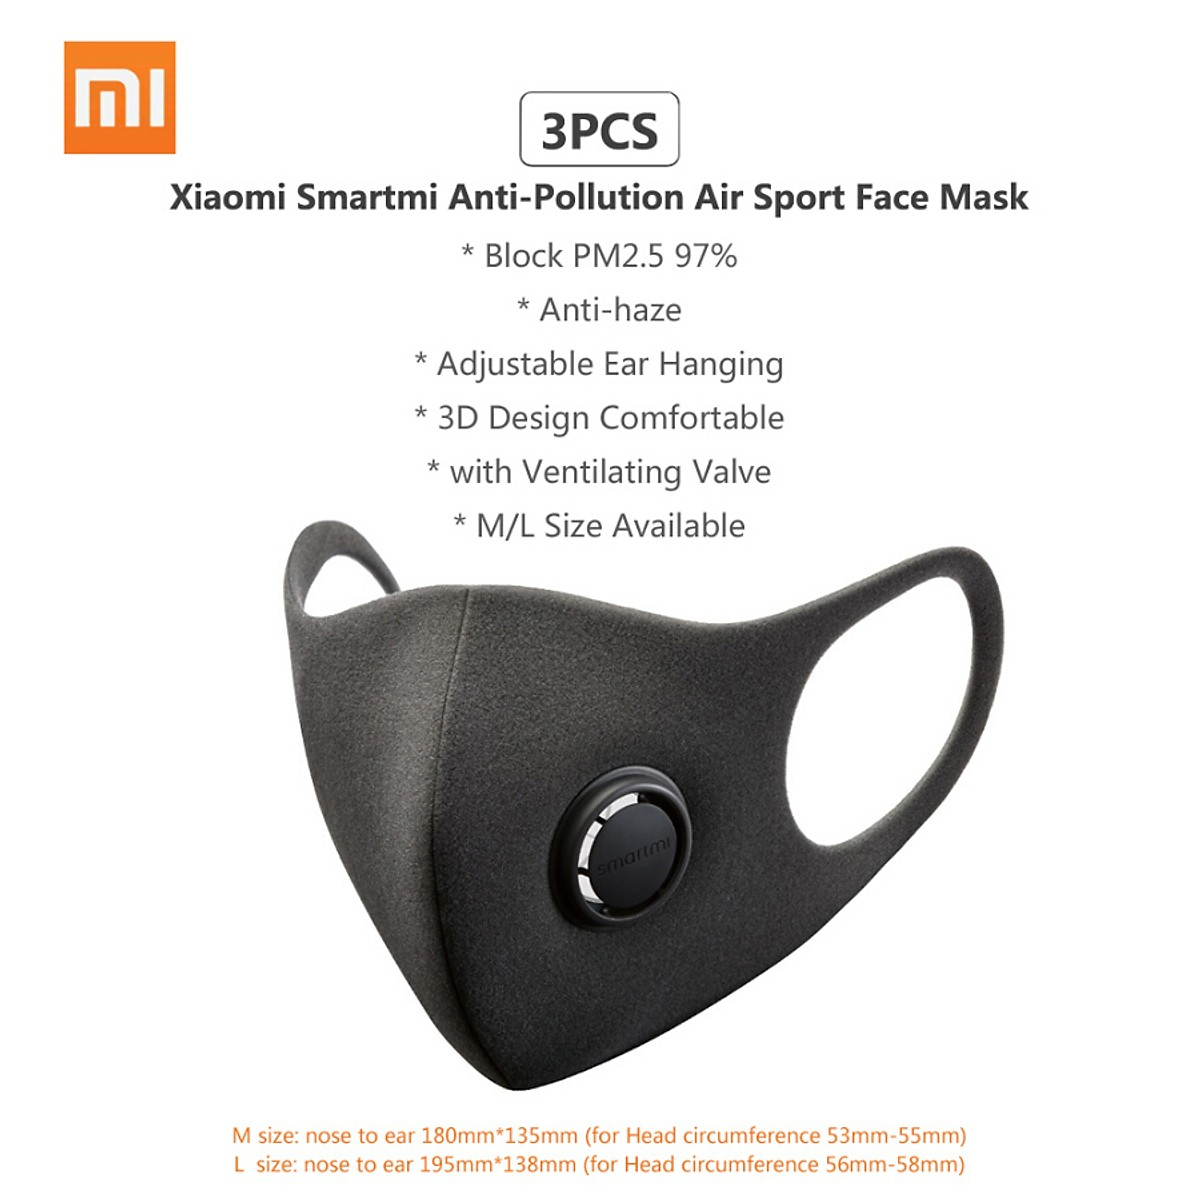 3PCS Xiaomi Smartmi Anti-Pollution Air Sport Face Mask Respirators Block PM2.5 Haze Anti-haze Adjustable Ear Hanging 3D Design Com